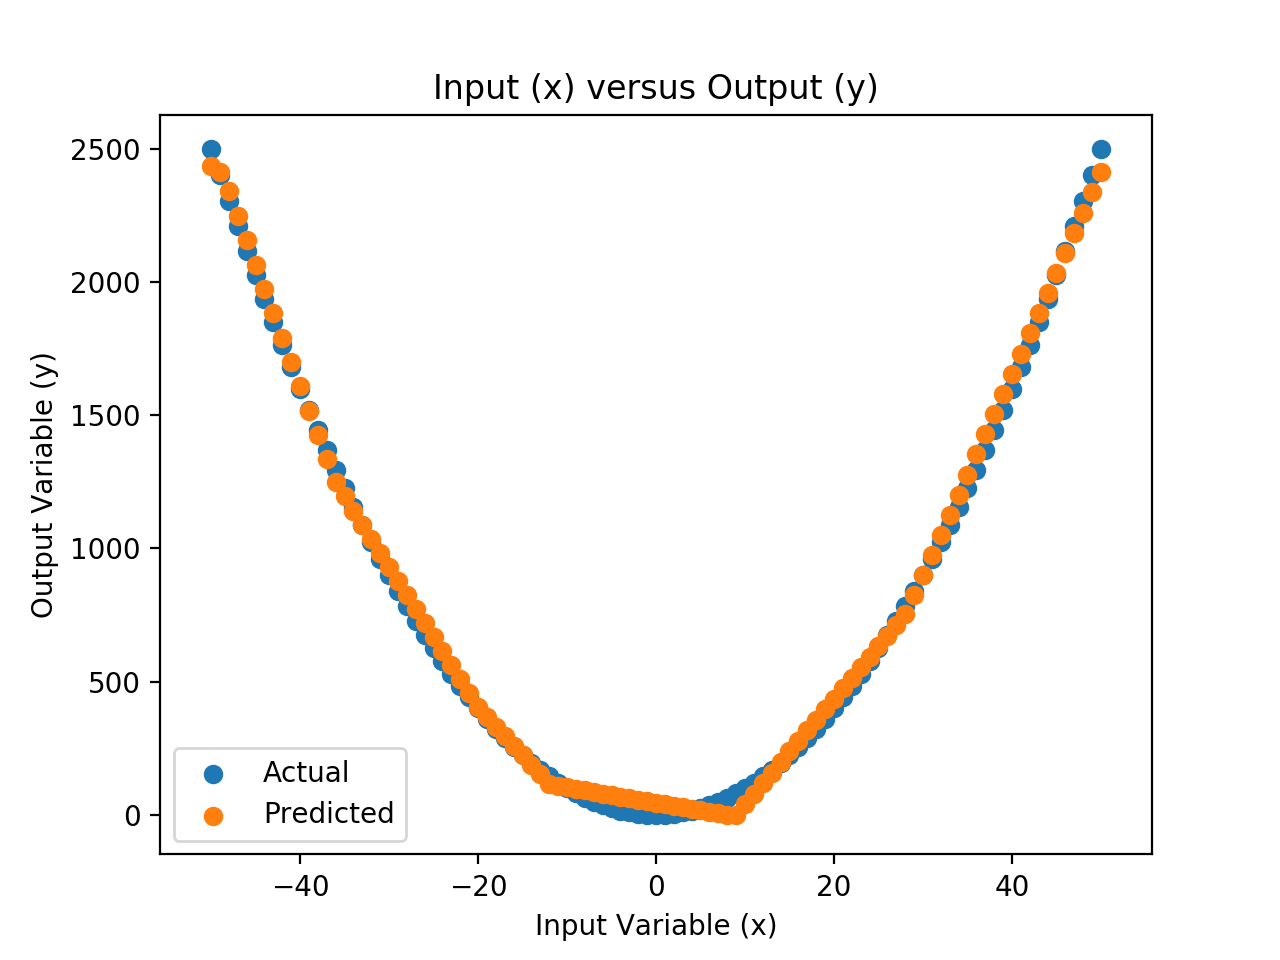 Scatter Plot of Input vs. Actual and Predicted Values for the Neural Net Approximation